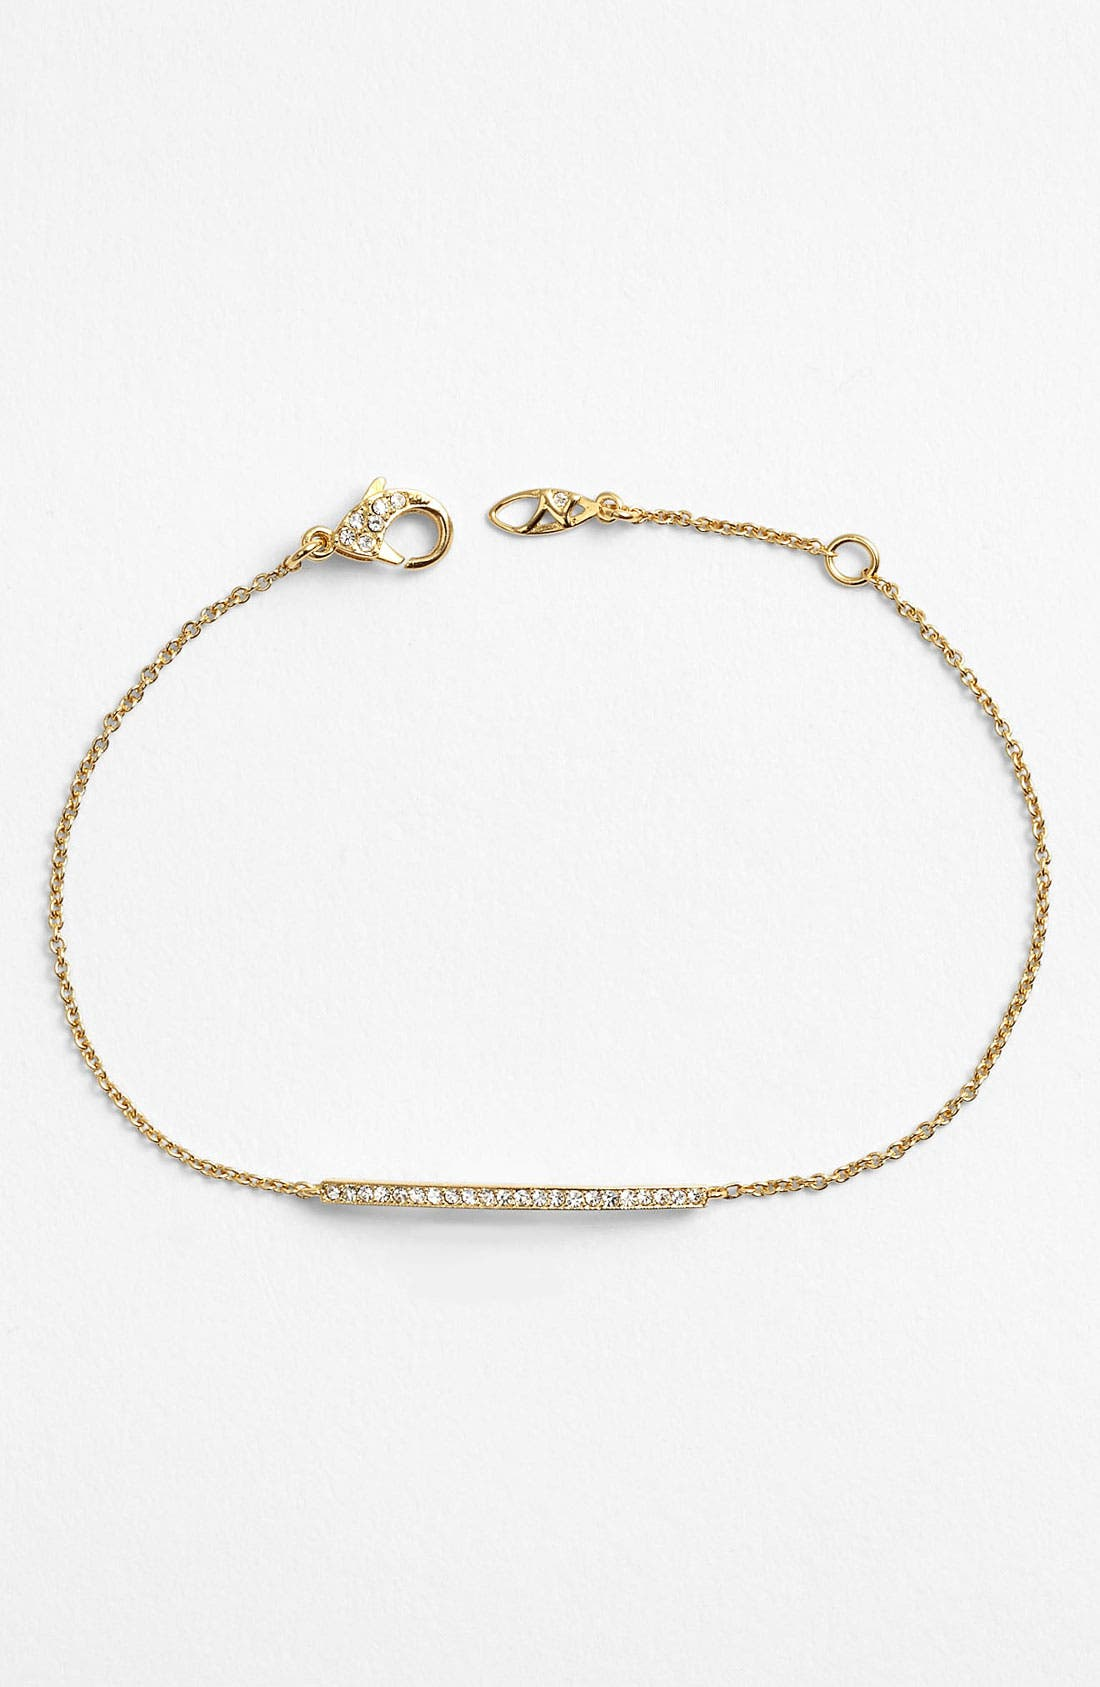 Main Image - Nadri Bar Station Bracelet (Nordstrom Exclusive)